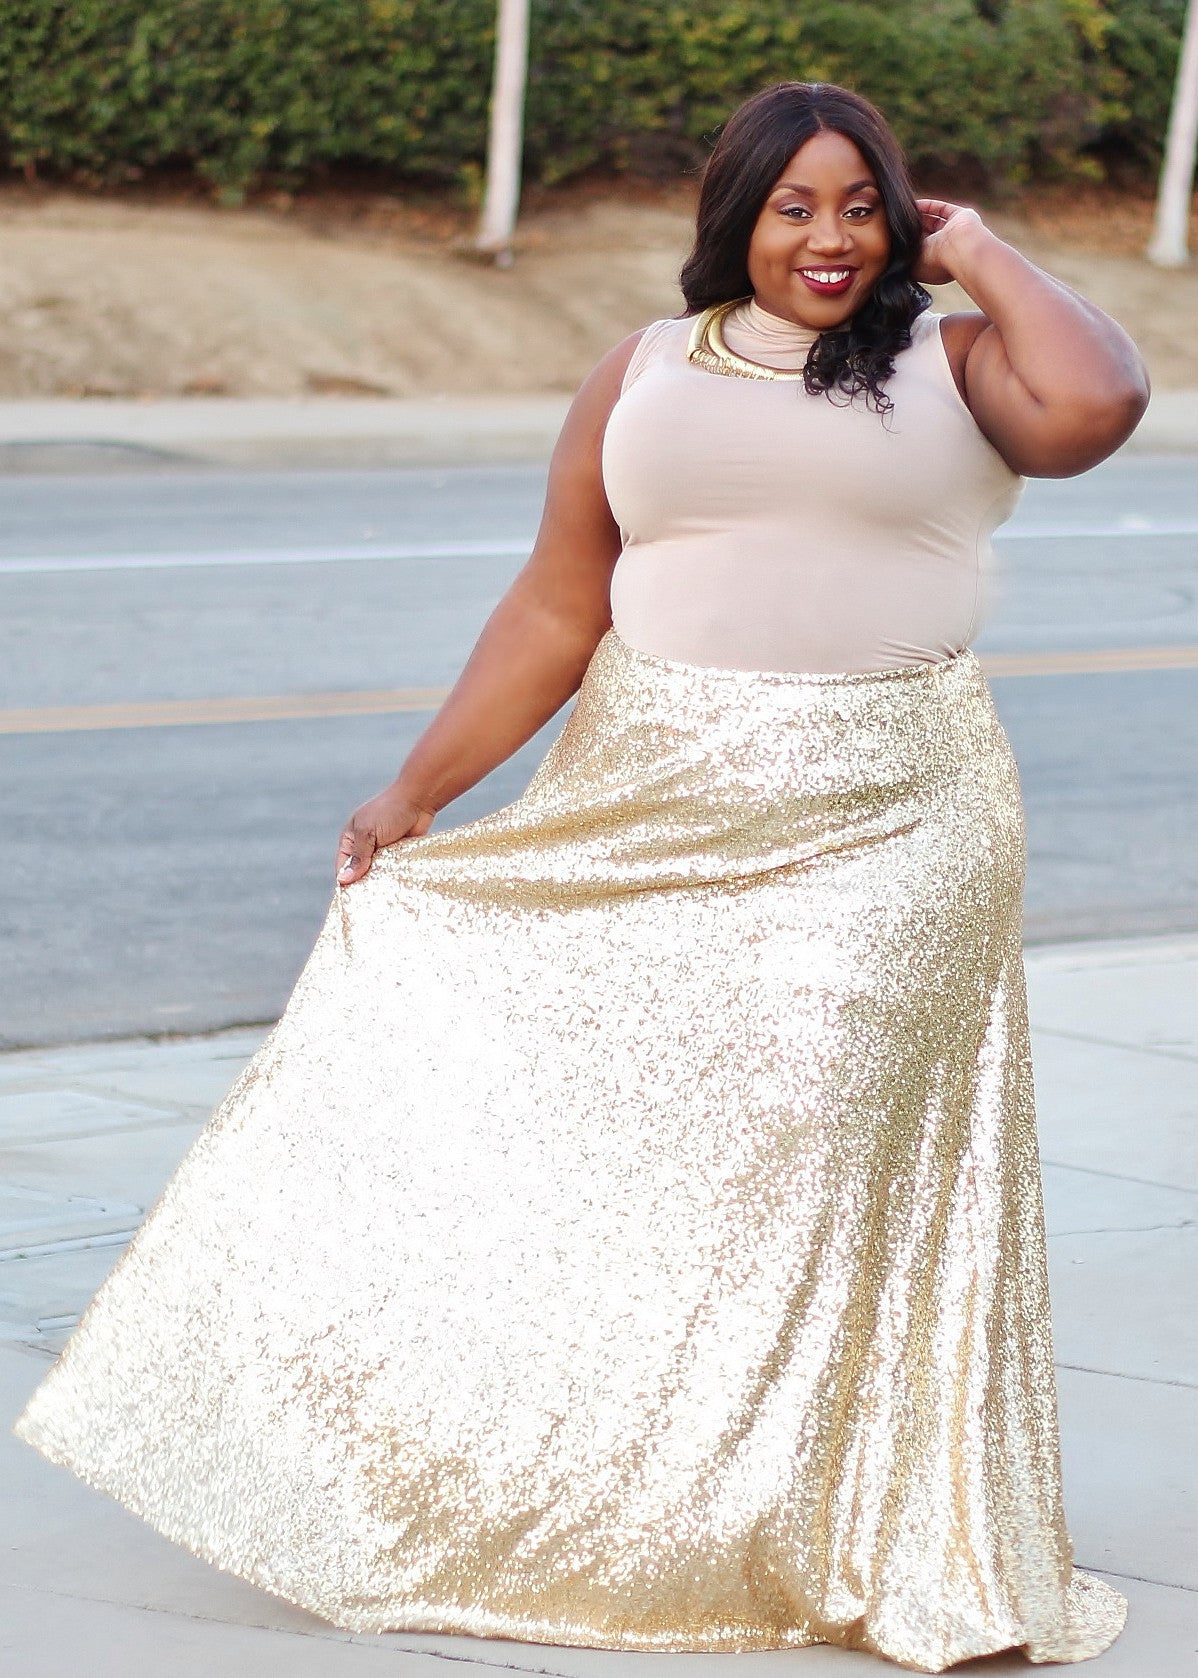 Plus Size Clothing for Women - The Showstopper Sequin Maxi Skirt - Gold - Society+ - Society Plus - Buy Online Now! - 2